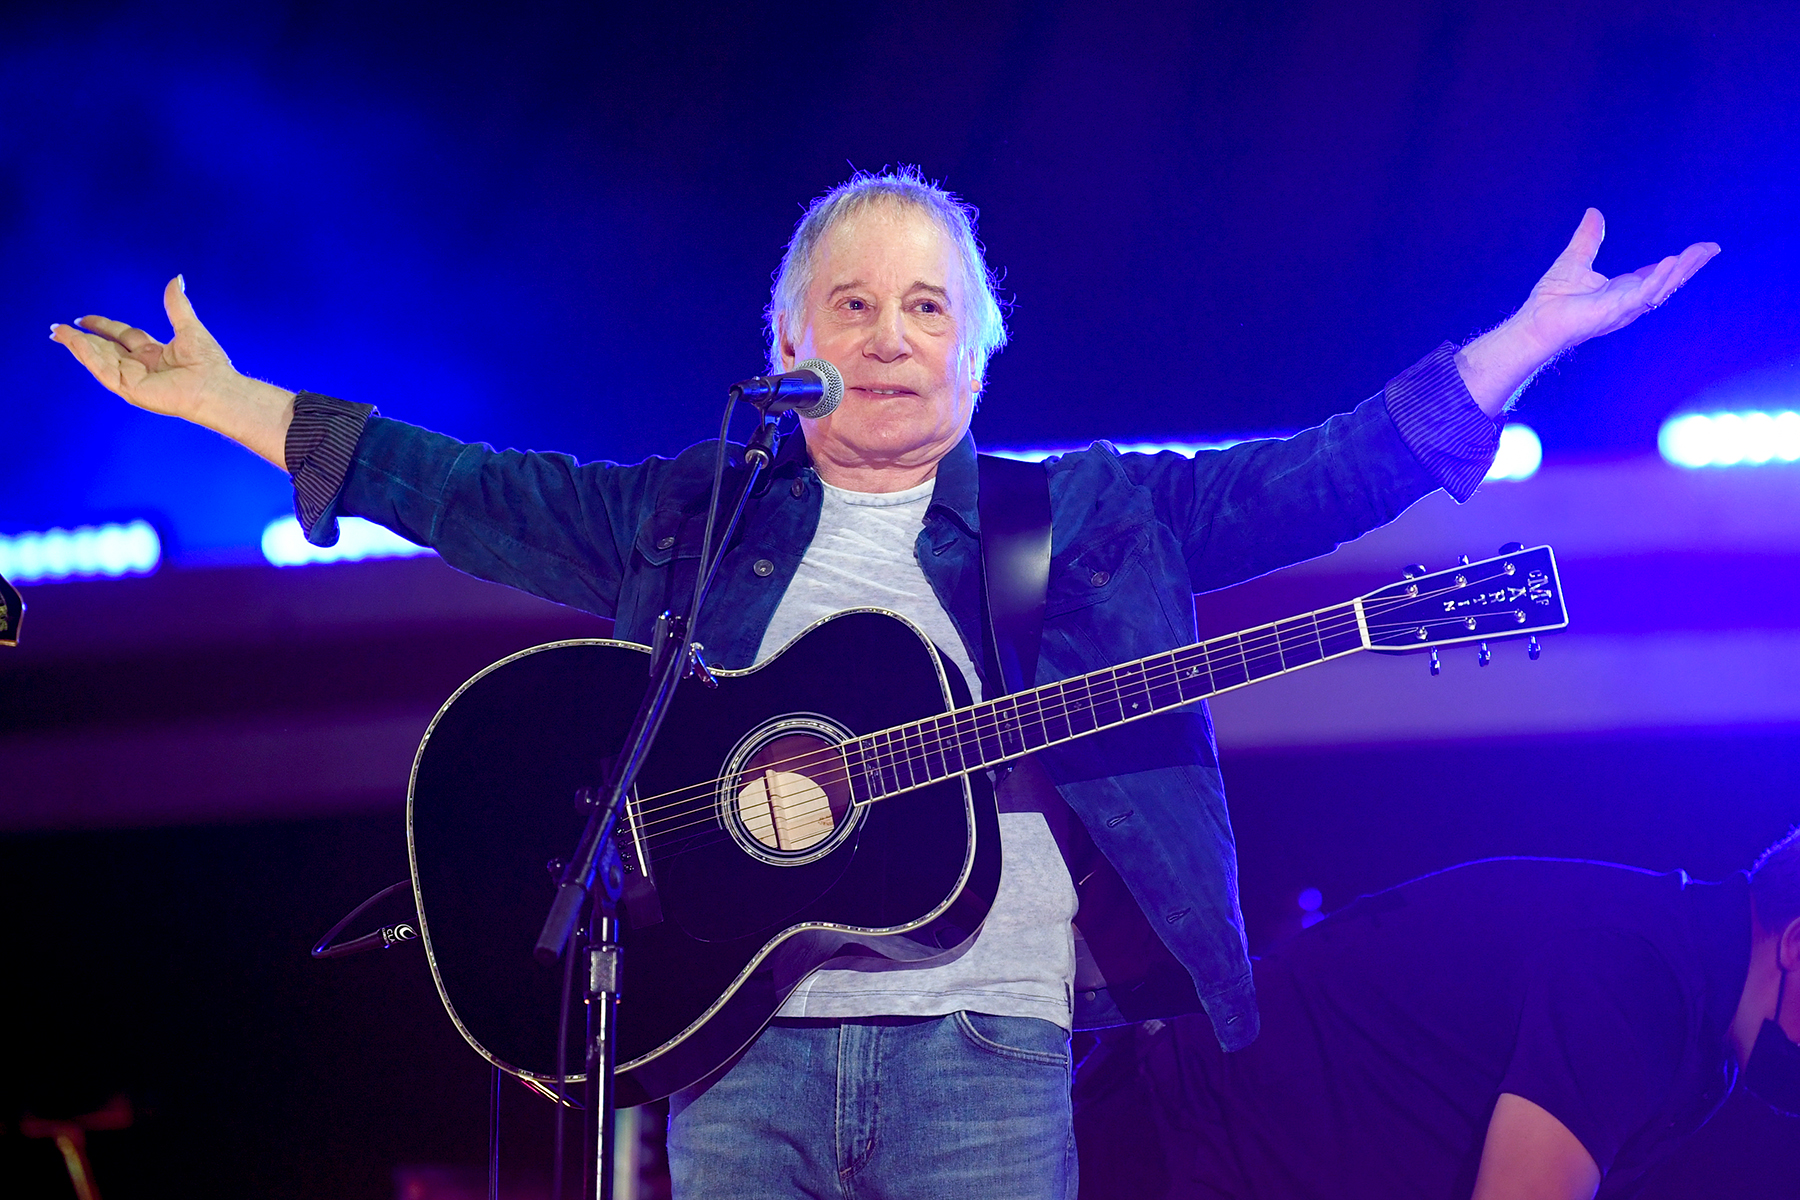 Singer-songwriter Paul Simon performs at Global Citizen Live in Central Park on Saturday, Sept. 25, 2021, in New York. (Photo by Evan Agostini/Invision/AP)